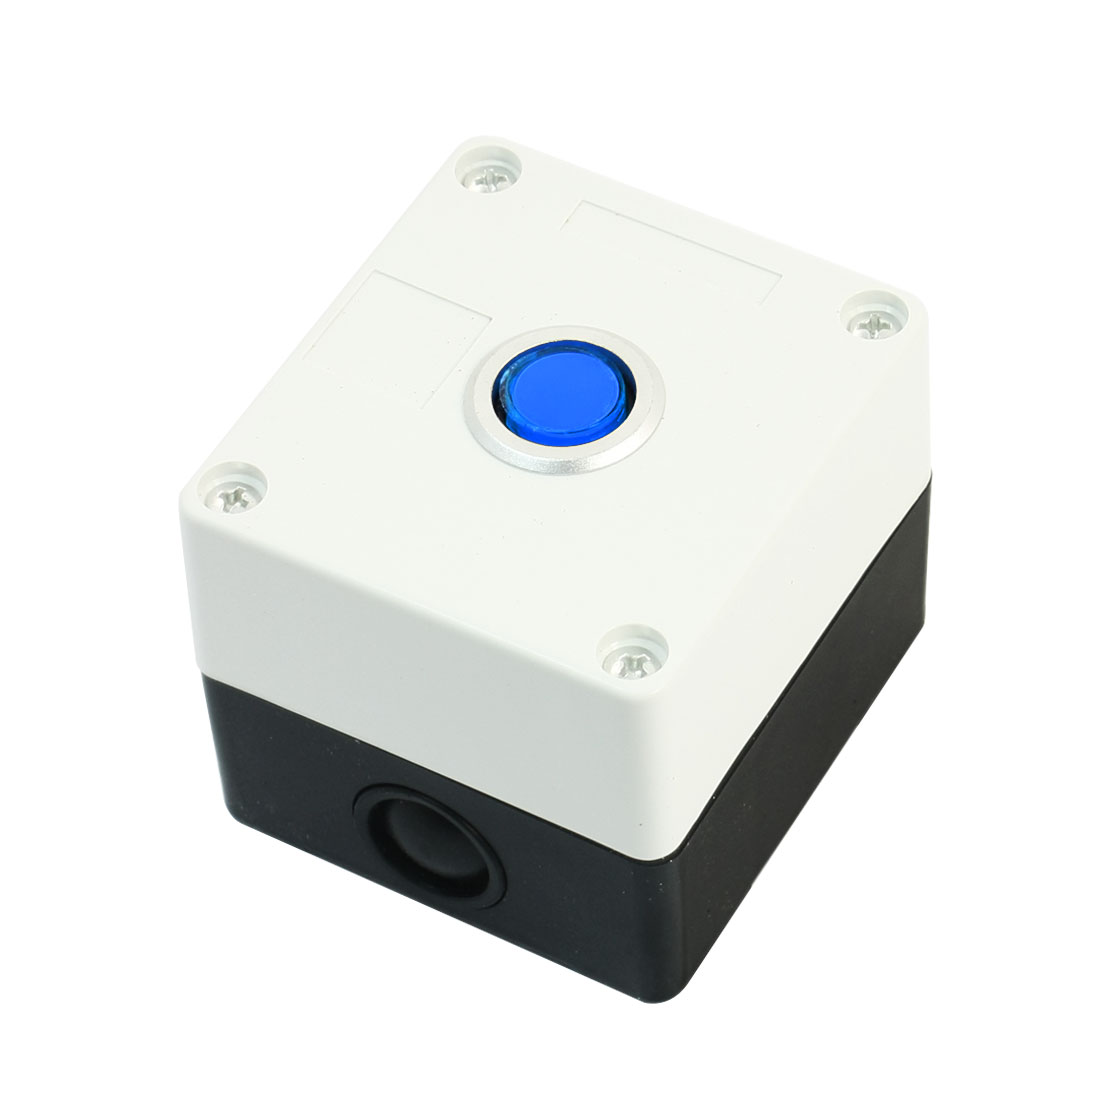 AC 220V 5A SPDT 5Pin 1NO 1NC Momentary Blue Pilot Lamp Rectangle White Plastic Push Button Station Switch Control Box